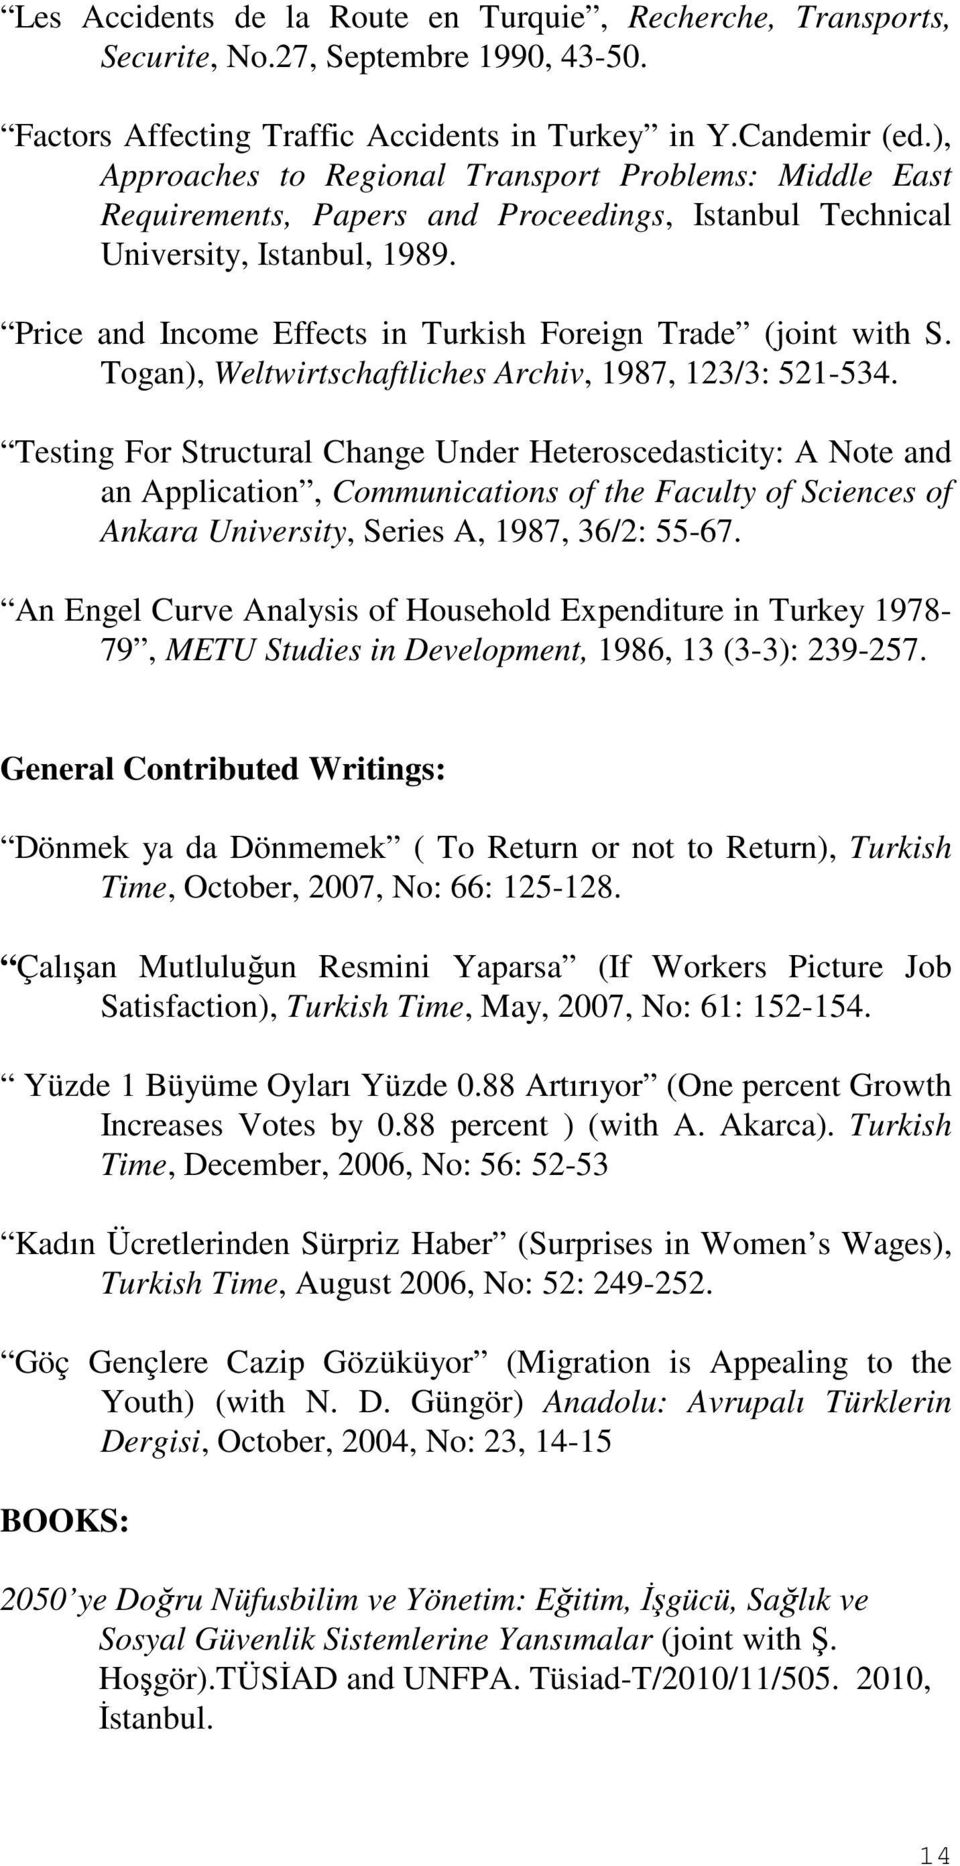 Price and Income Effects in Turkish Foreign Trade (joint with S. Togan), Weltwirtschaftliches Archiv, 1987, 123/3: 521-534.